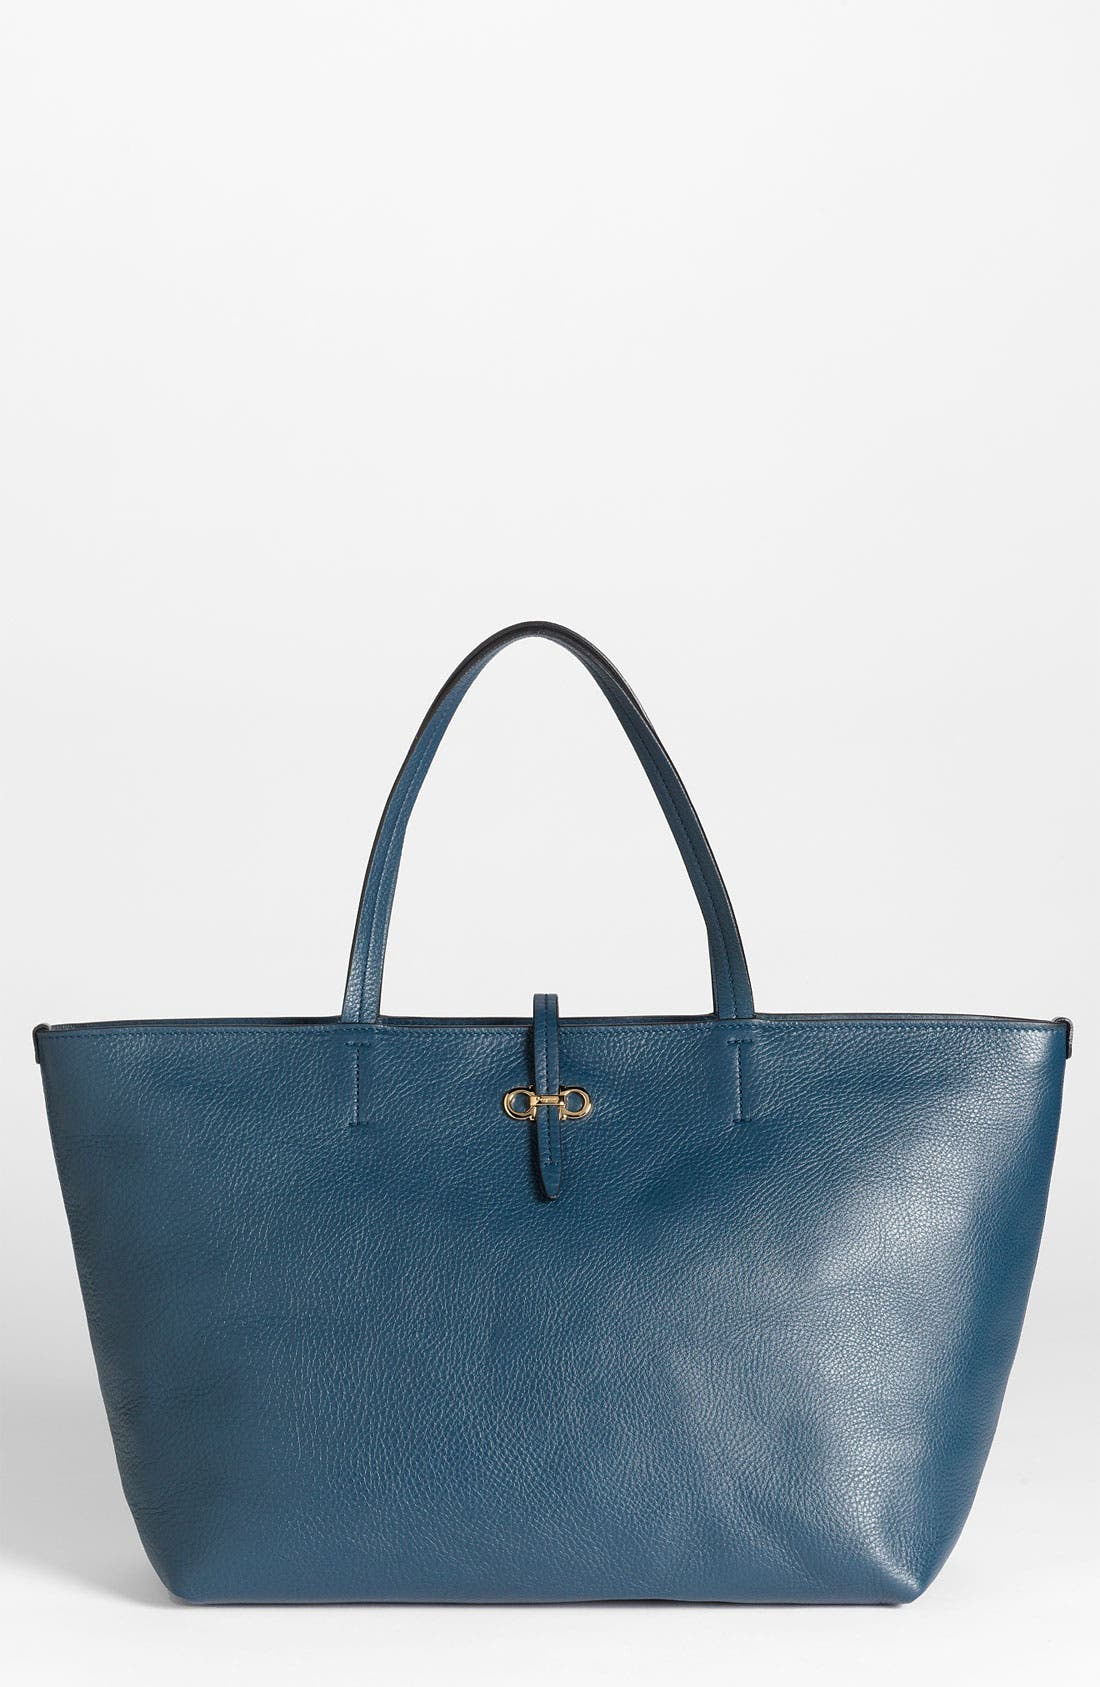 Main Image - Salvatore Ferragamo 'Bice' Leather Tote